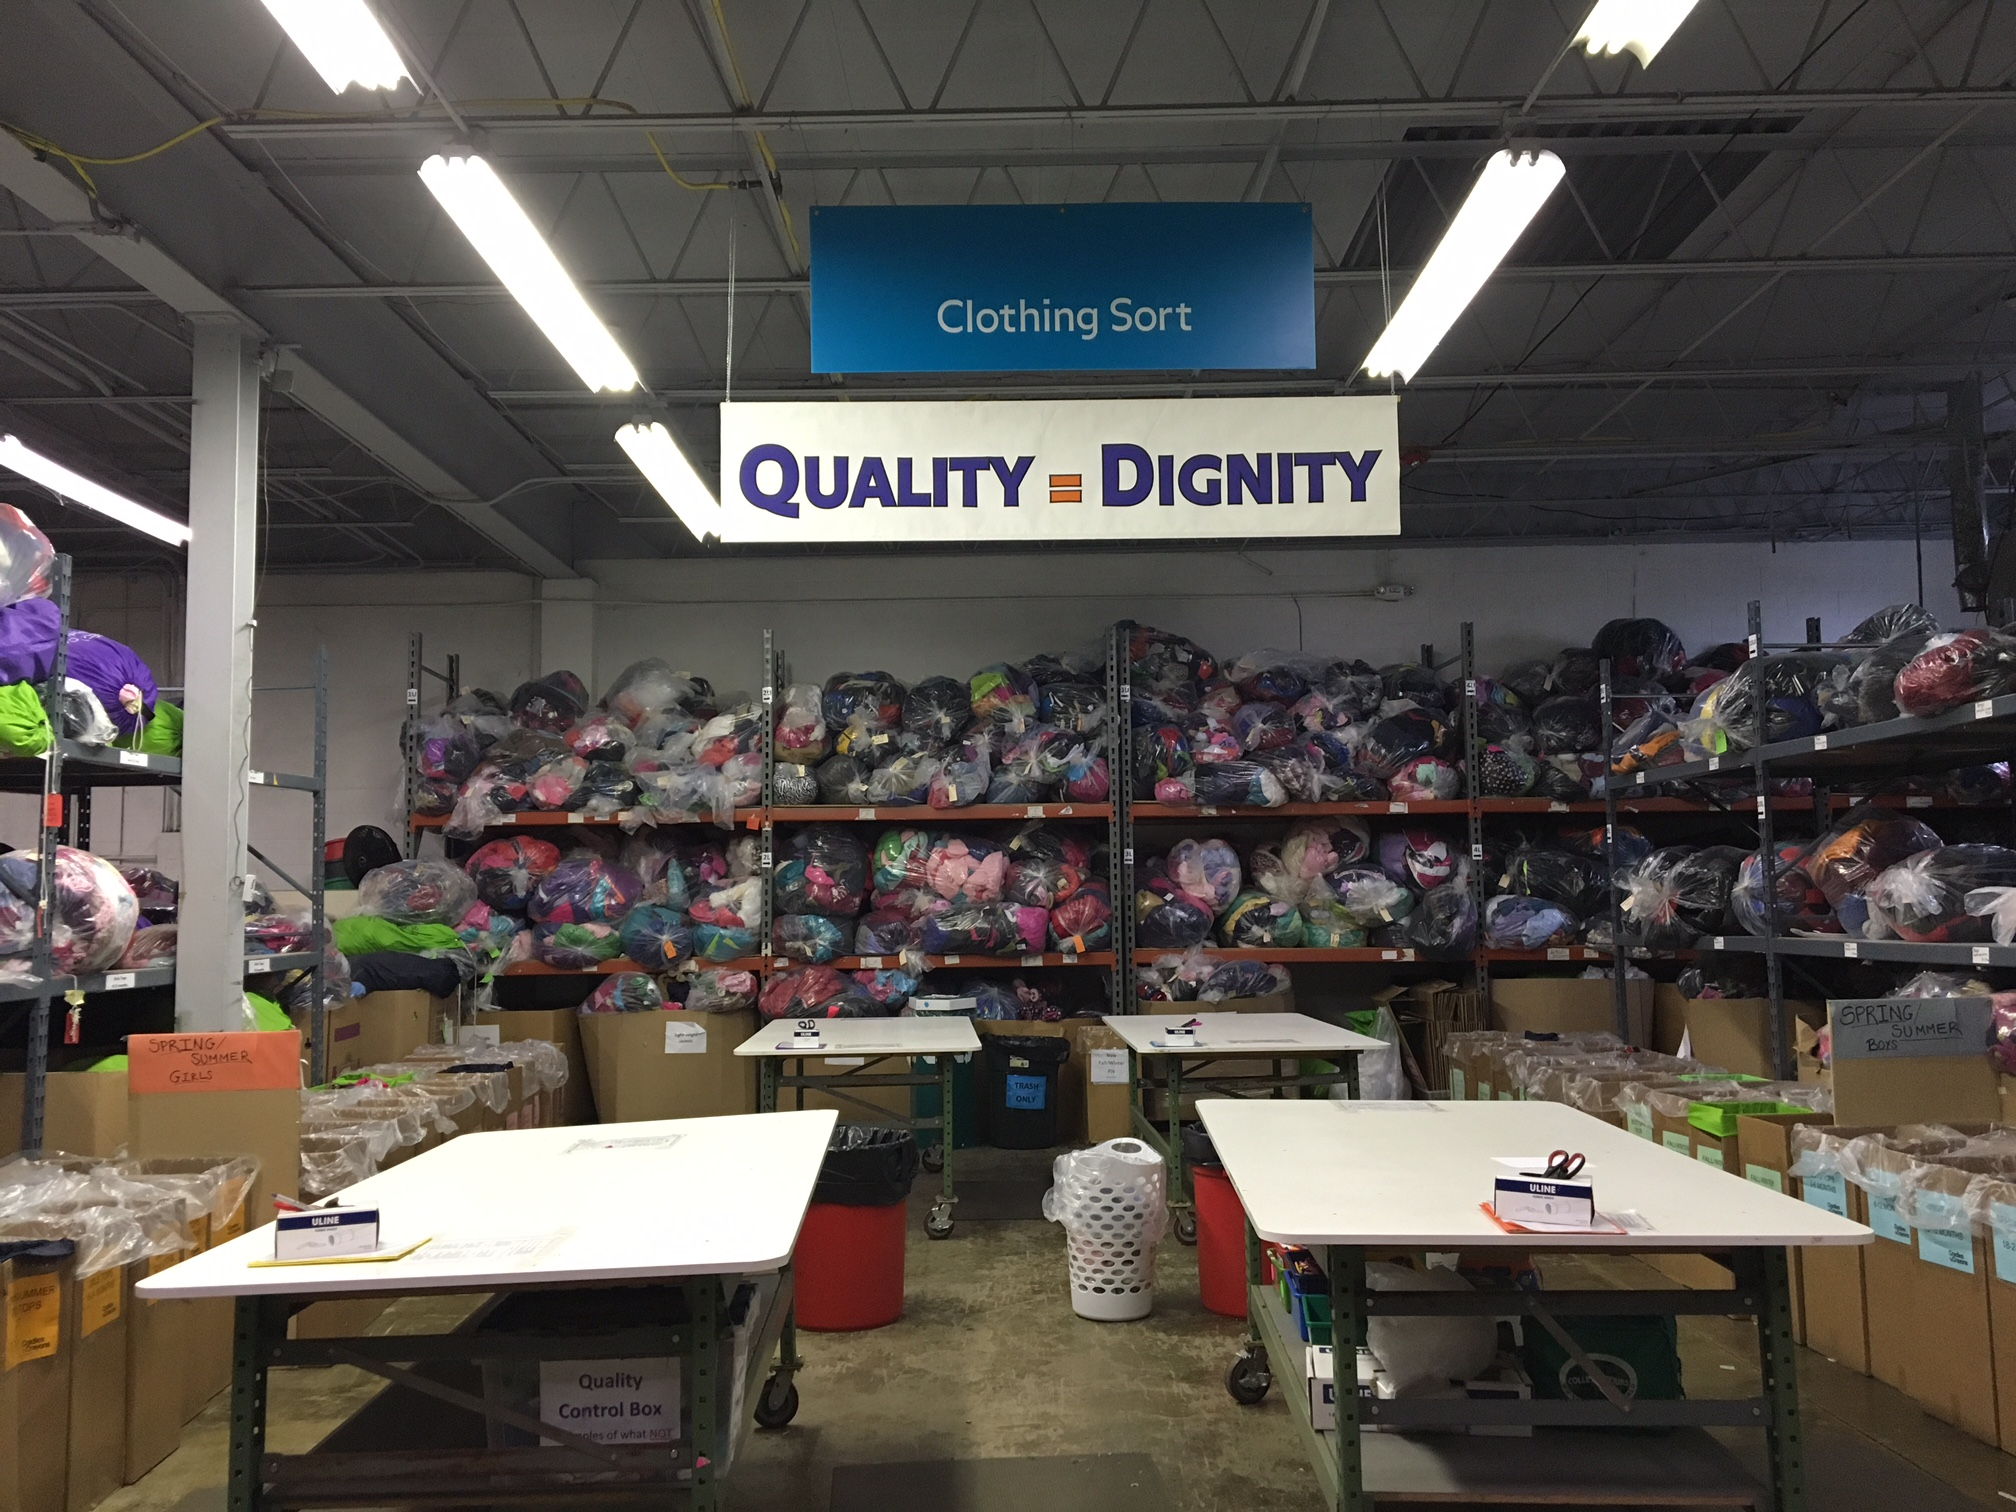 Quality = Dignity